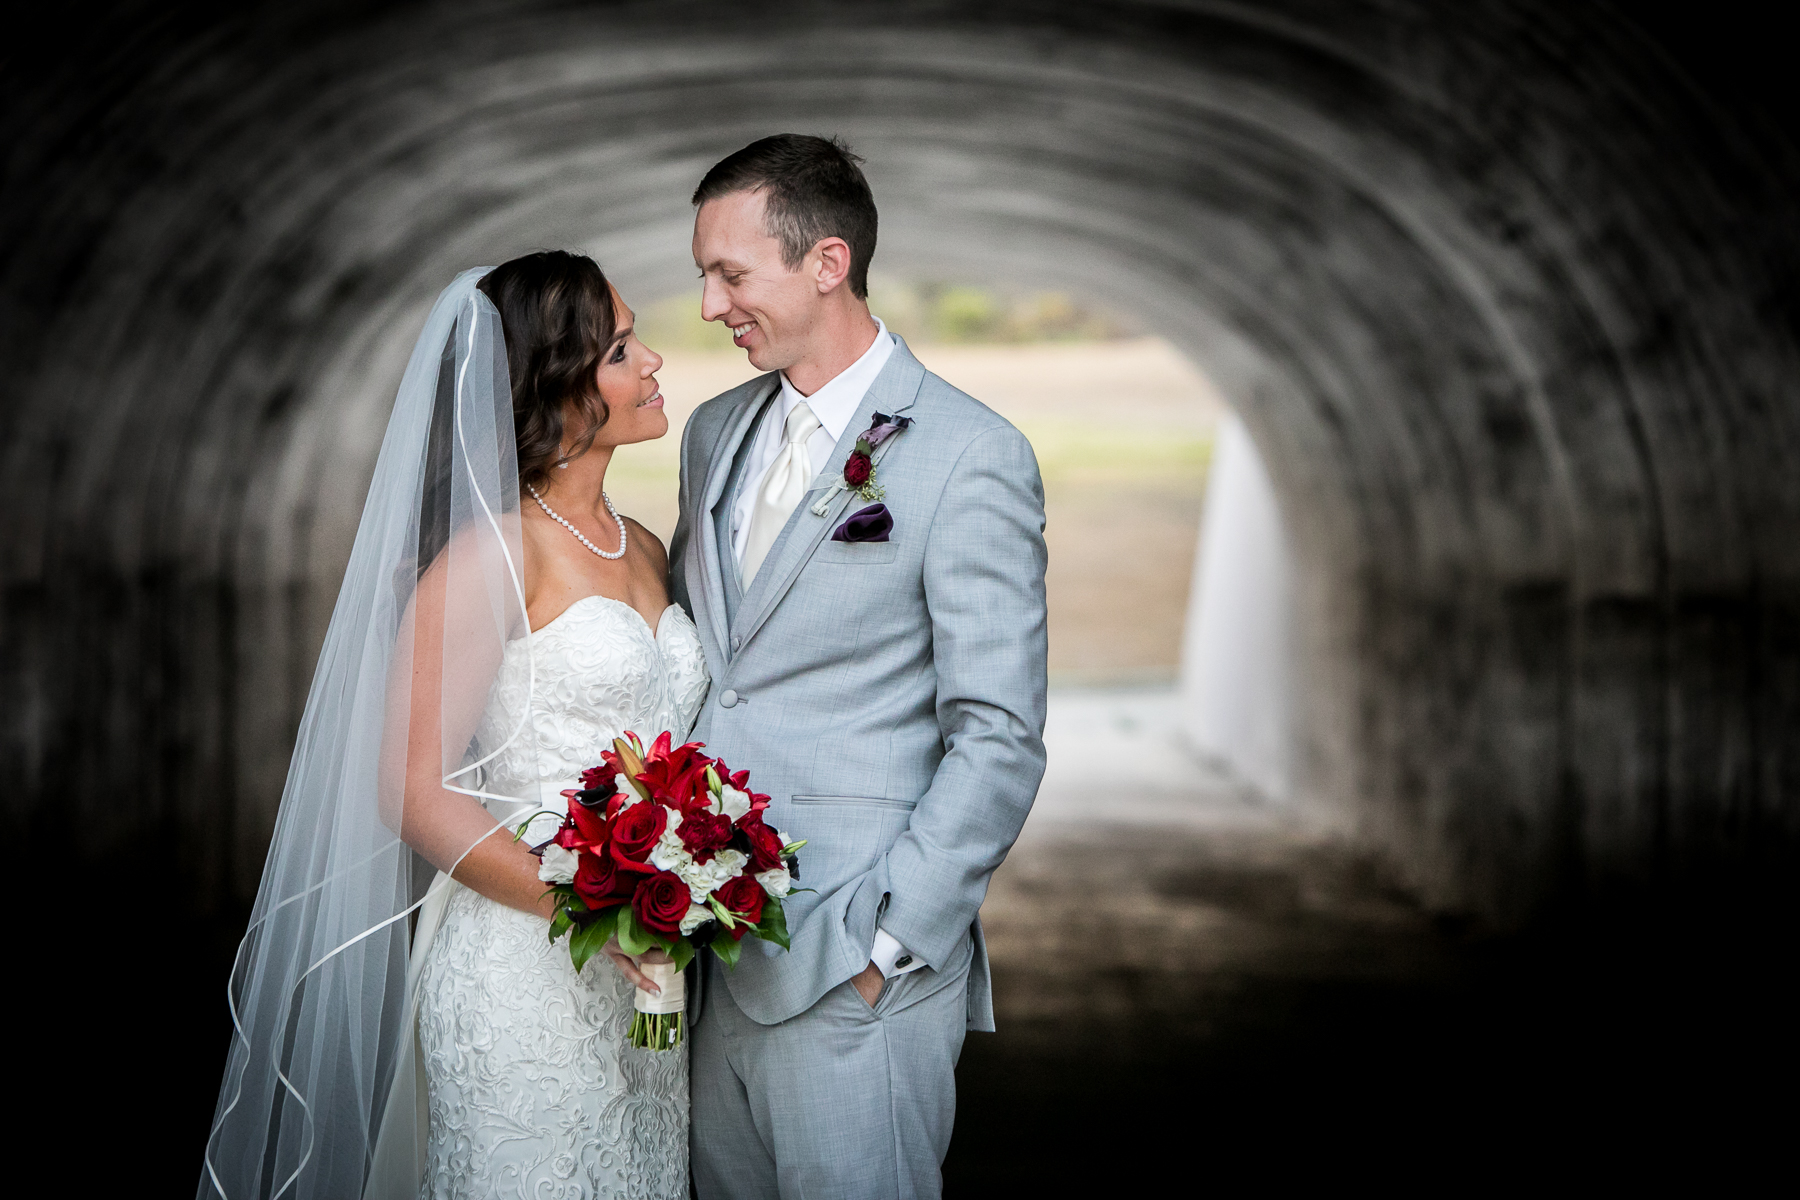 bride and groom portrait under tunnel at wedding at the champion's club at the retreatphotos